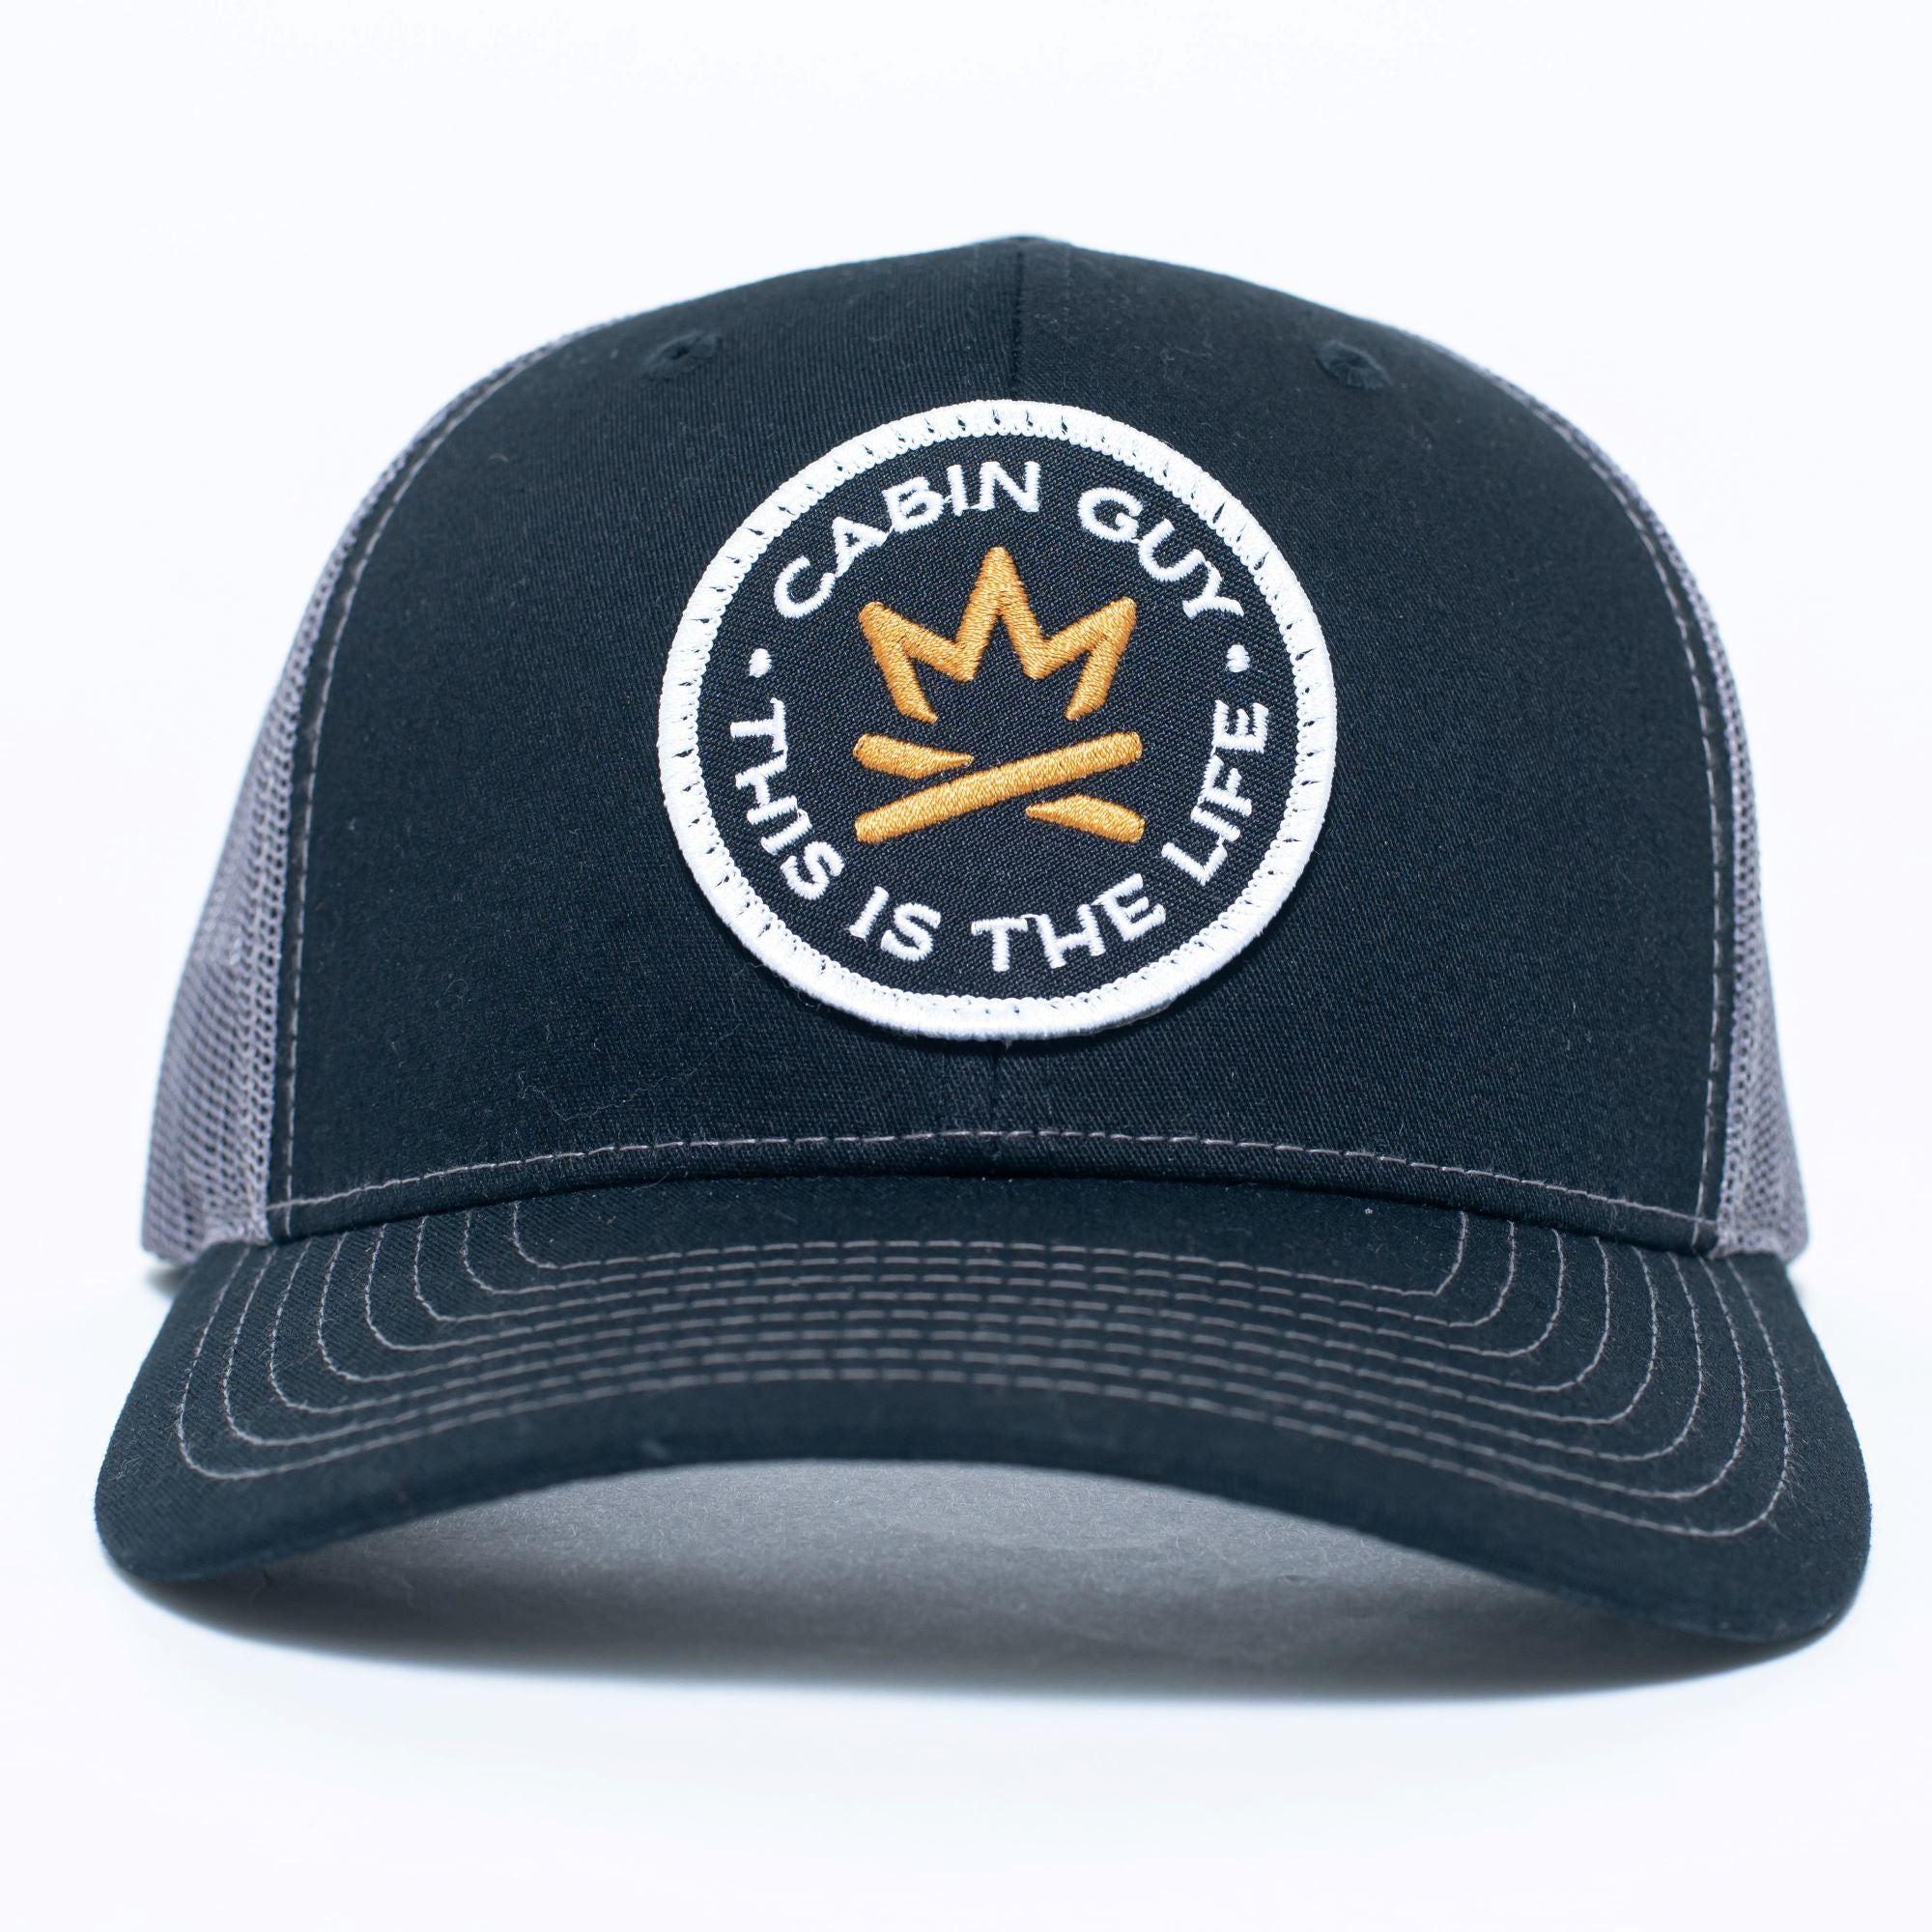 Adirondack Fire Crown 'This is the Life' Woven Patch Cap